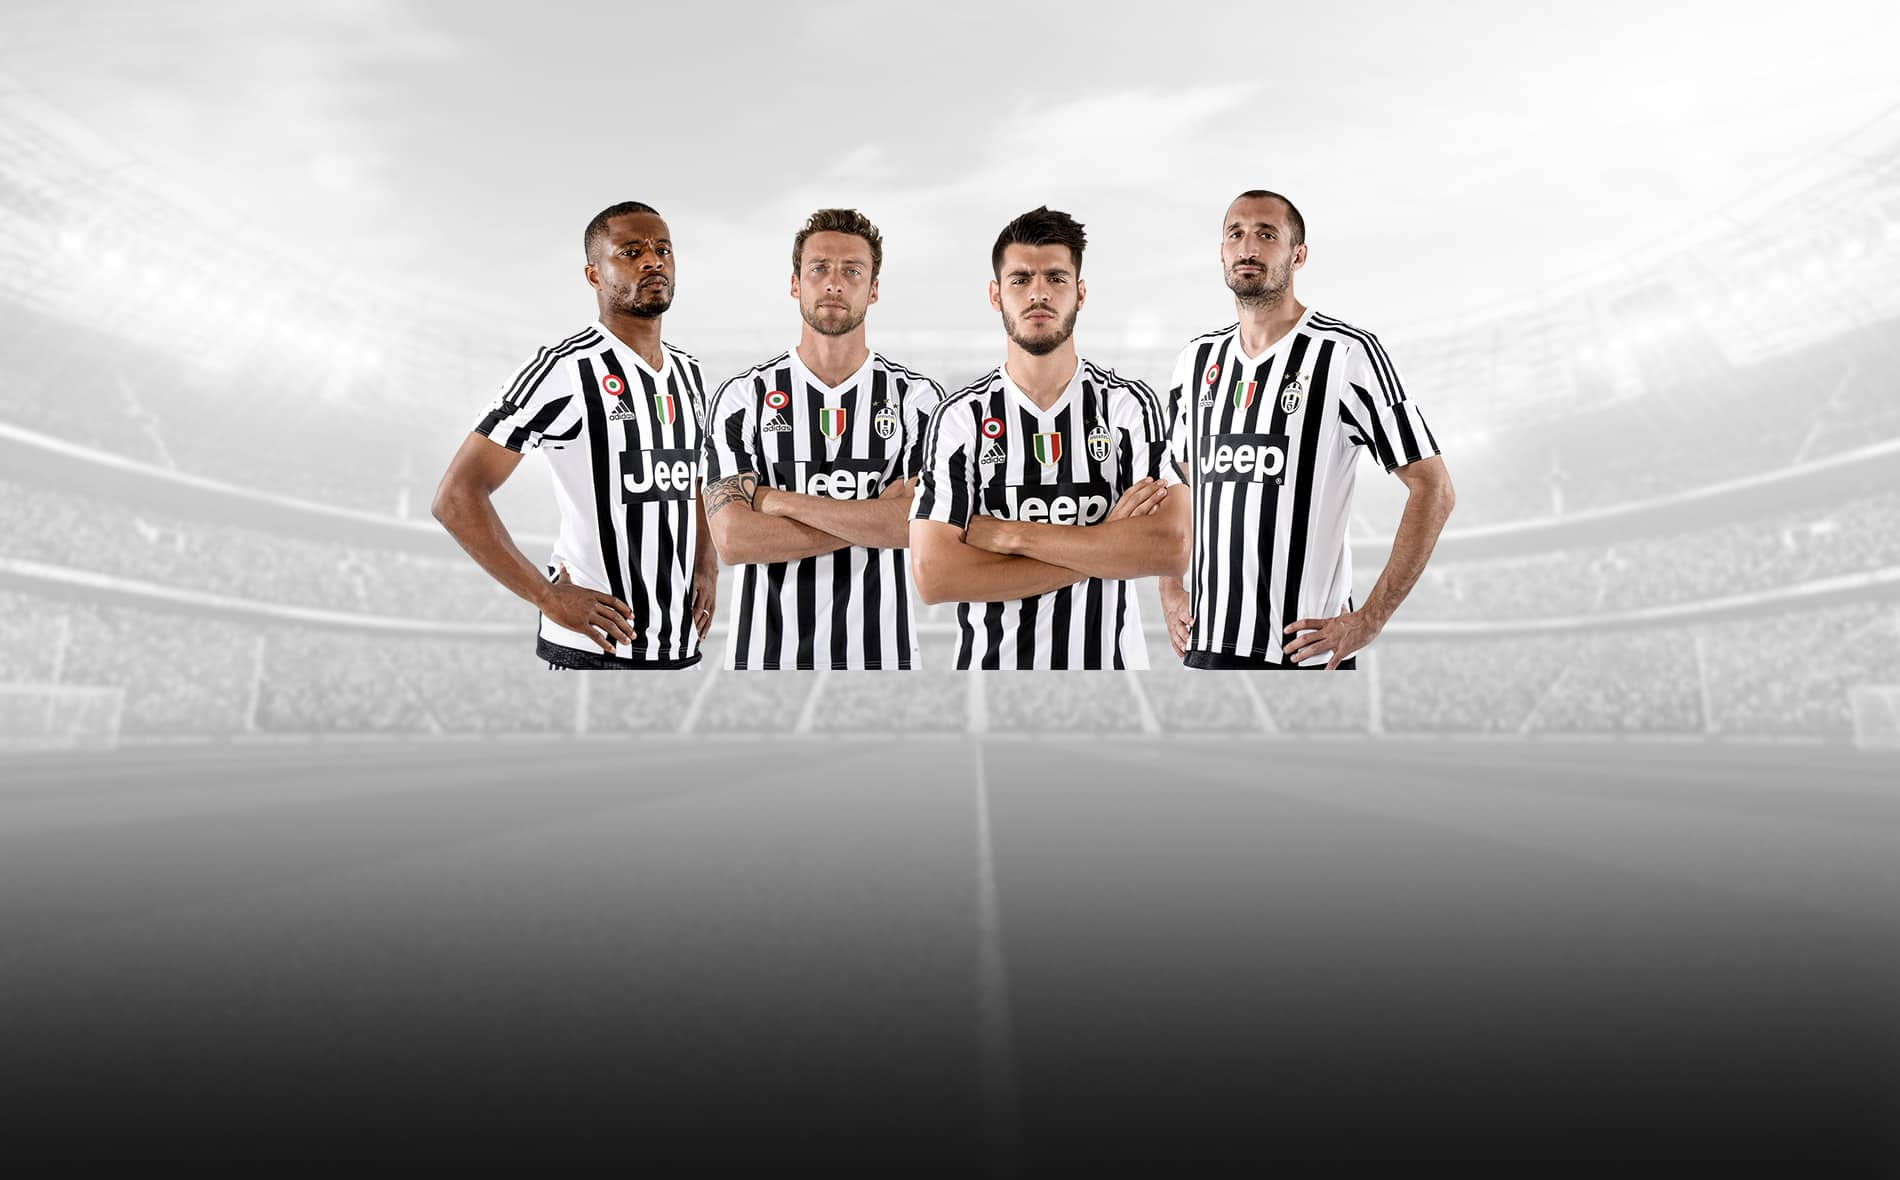 Jeep 2015 patrocina a Juventus Football Club